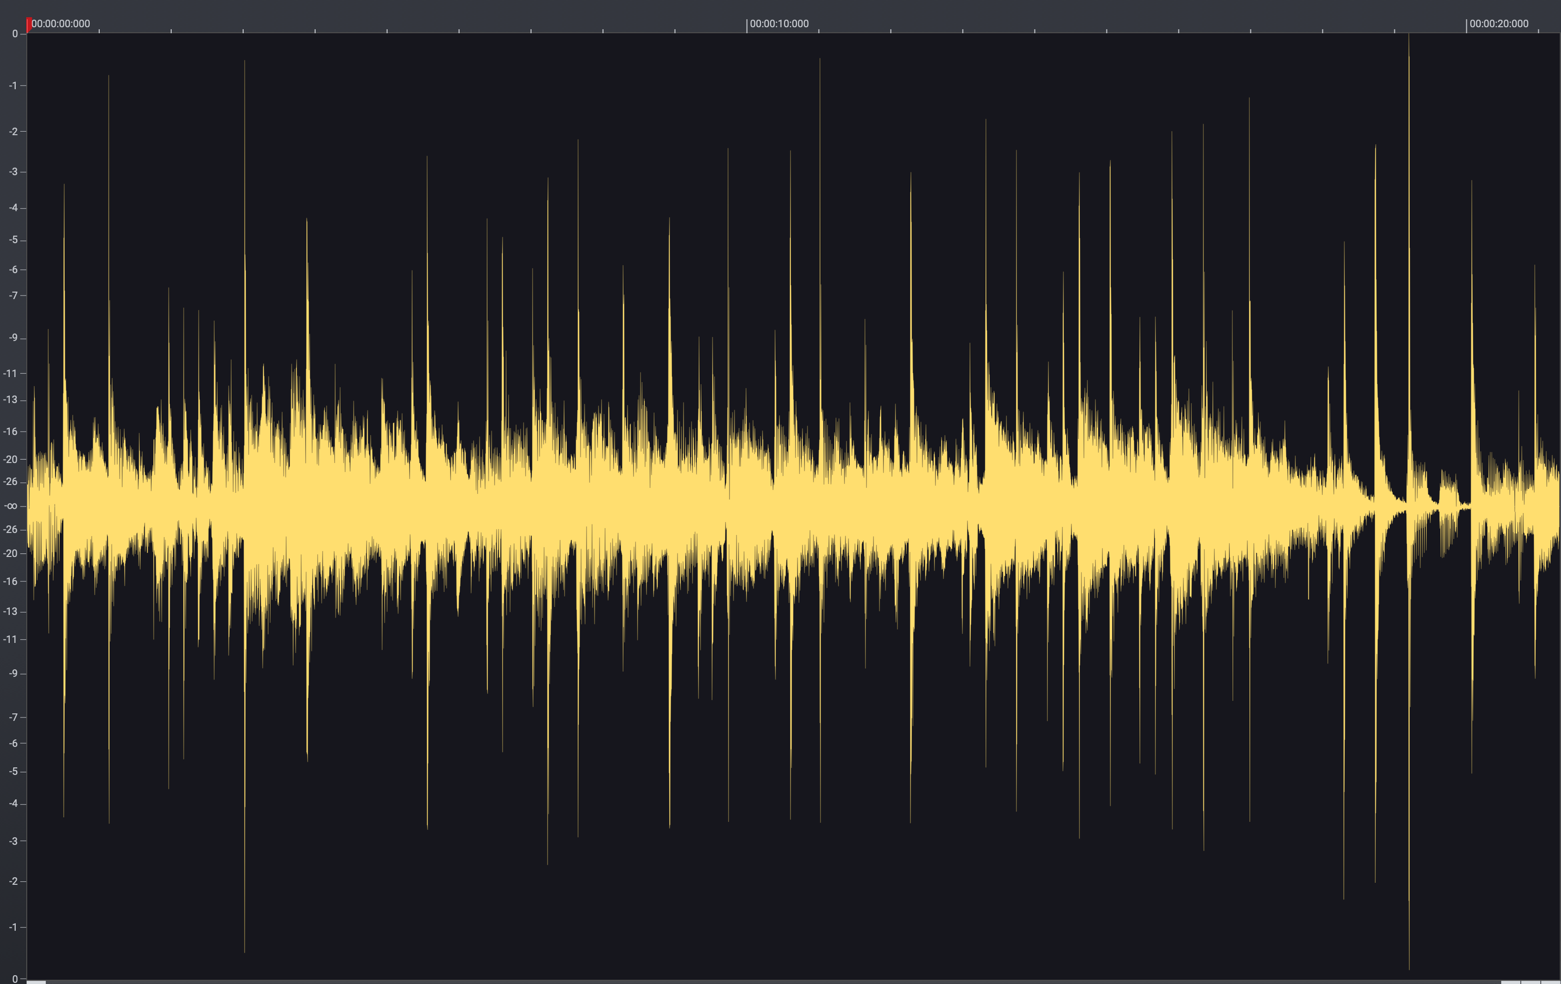 Figure 1 - A passage of raw (uncompressed) music. The crest factor is about 20 dB.